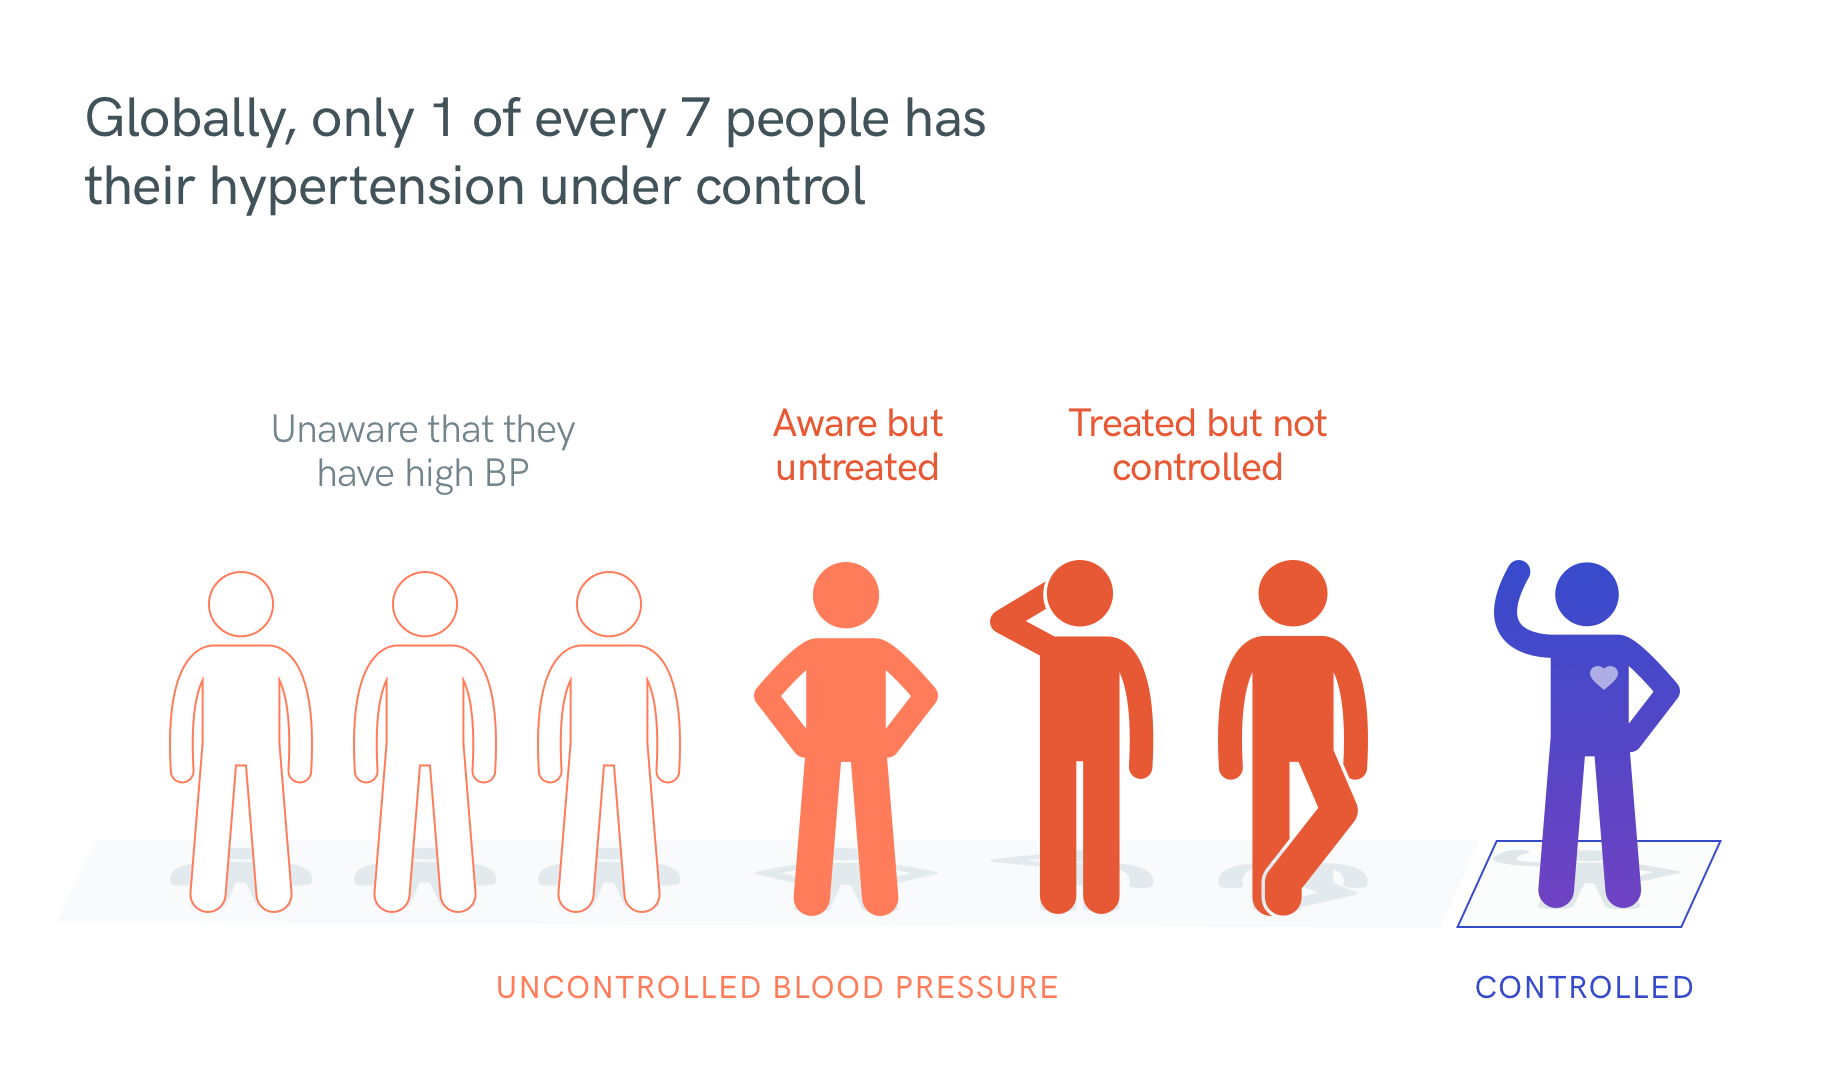 Globally, only 1 of every 7 people has their hypertension under control